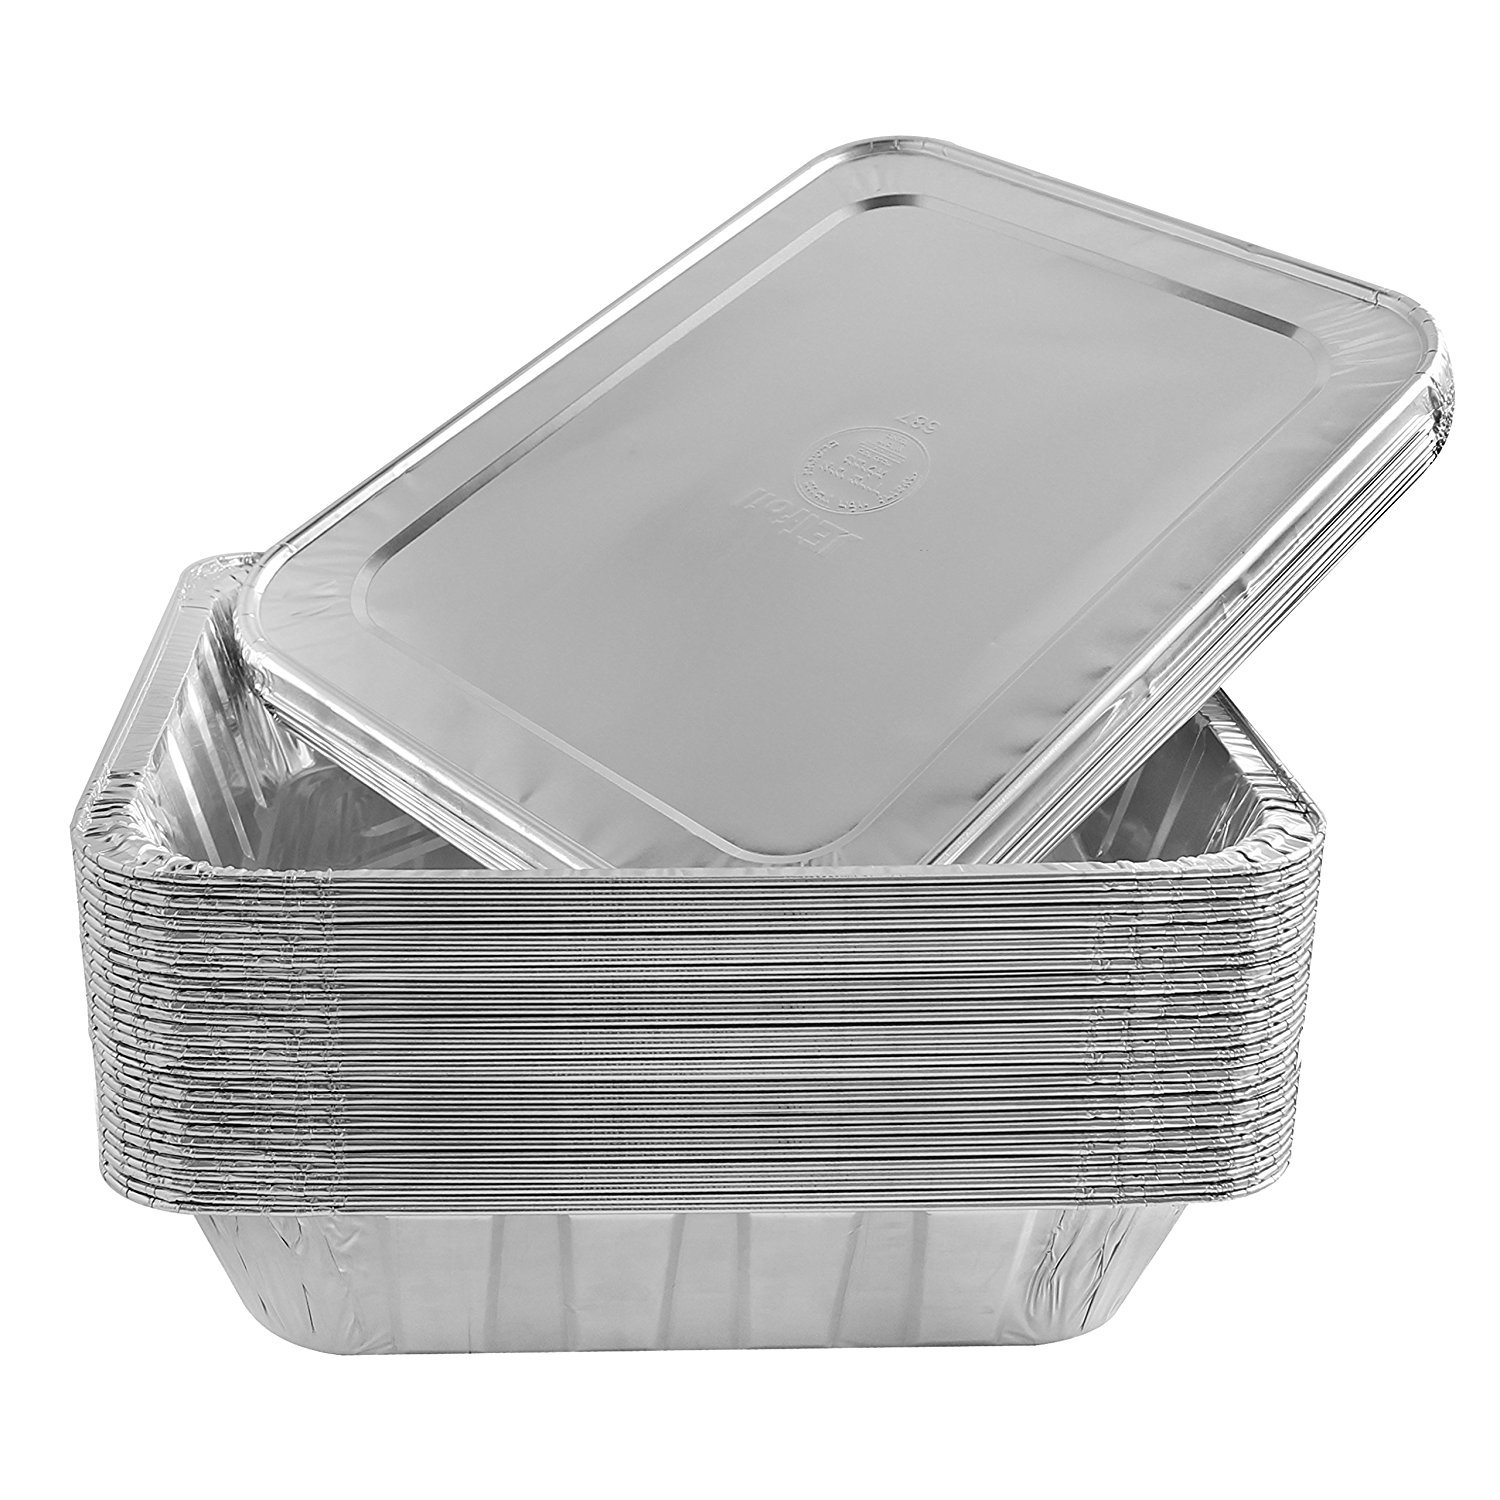 Jetfoil Aluminum Foil Steam Table Pans With Lids | Perfect for Catering, Party Supplies & Suitable for Broiling, Baking, Cakes and Pies - 9 x 13 Half size Deep | Pack of 30 by Jetfoil